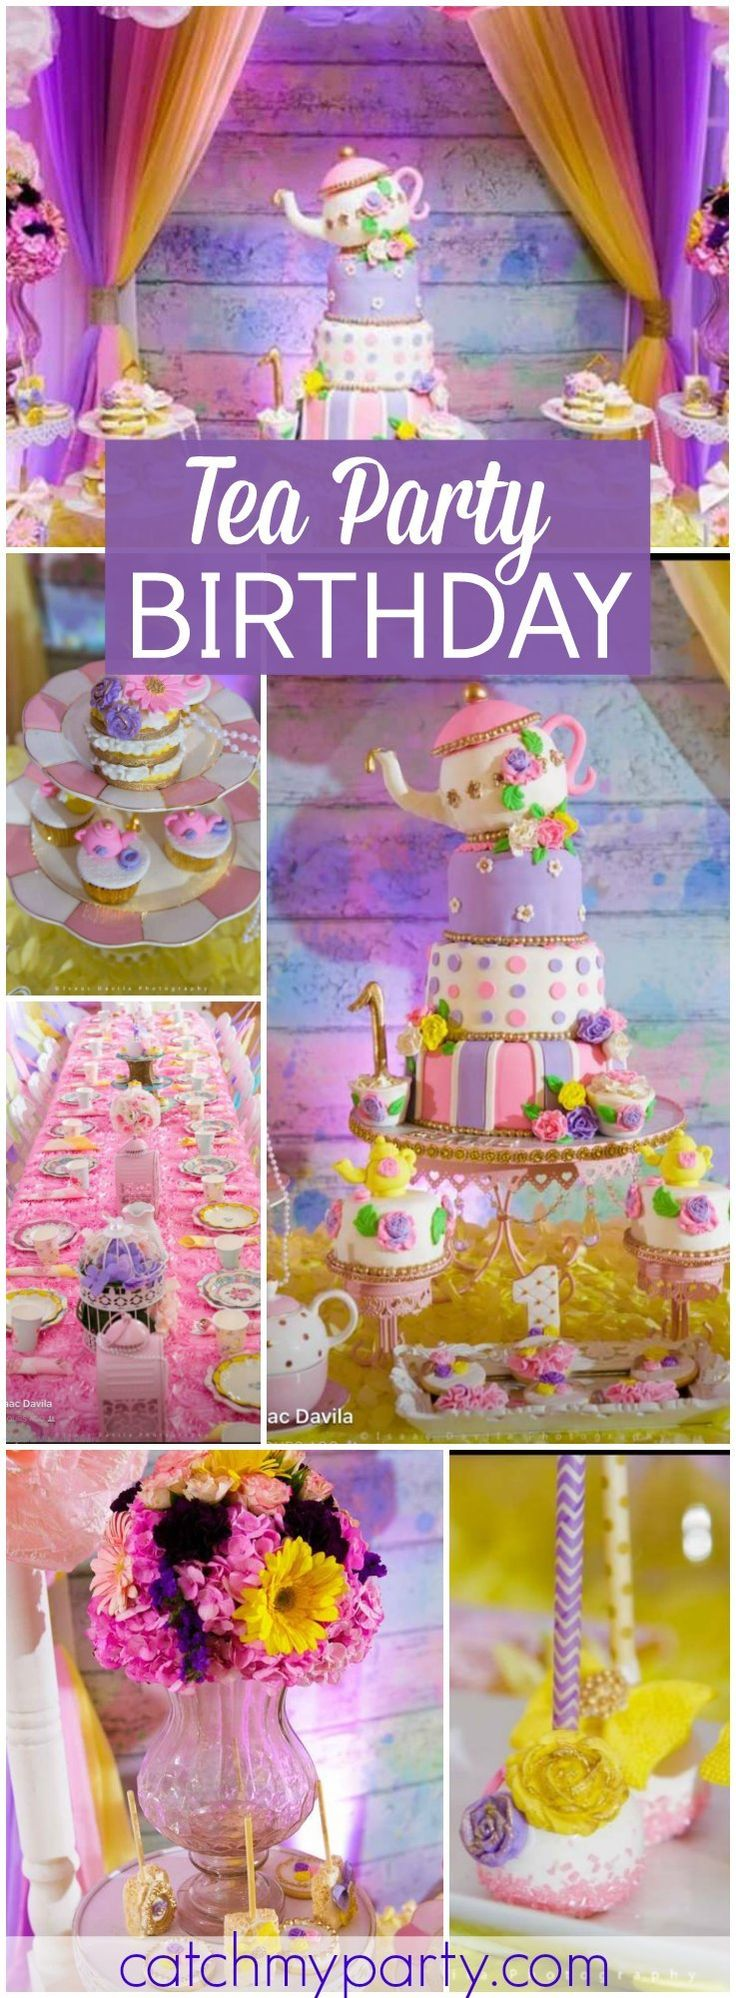 928 best Maëly images on Pinterest | Sugar, Fondant cakes and ...